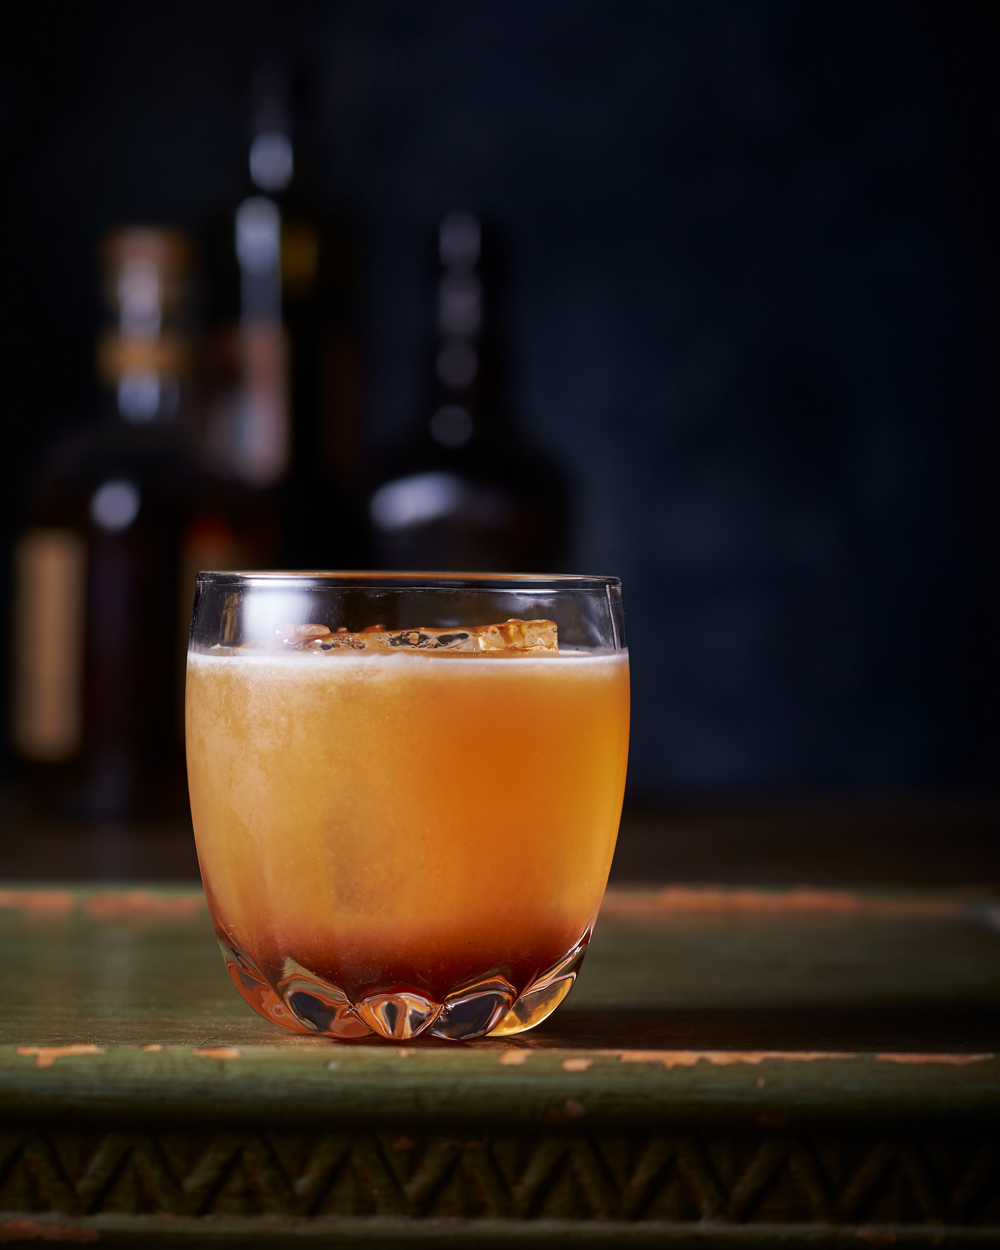 """John Valls' """"Perfect Moment"""" for Imbibe Magazine - Cocktail in Round Lowball Glass"""